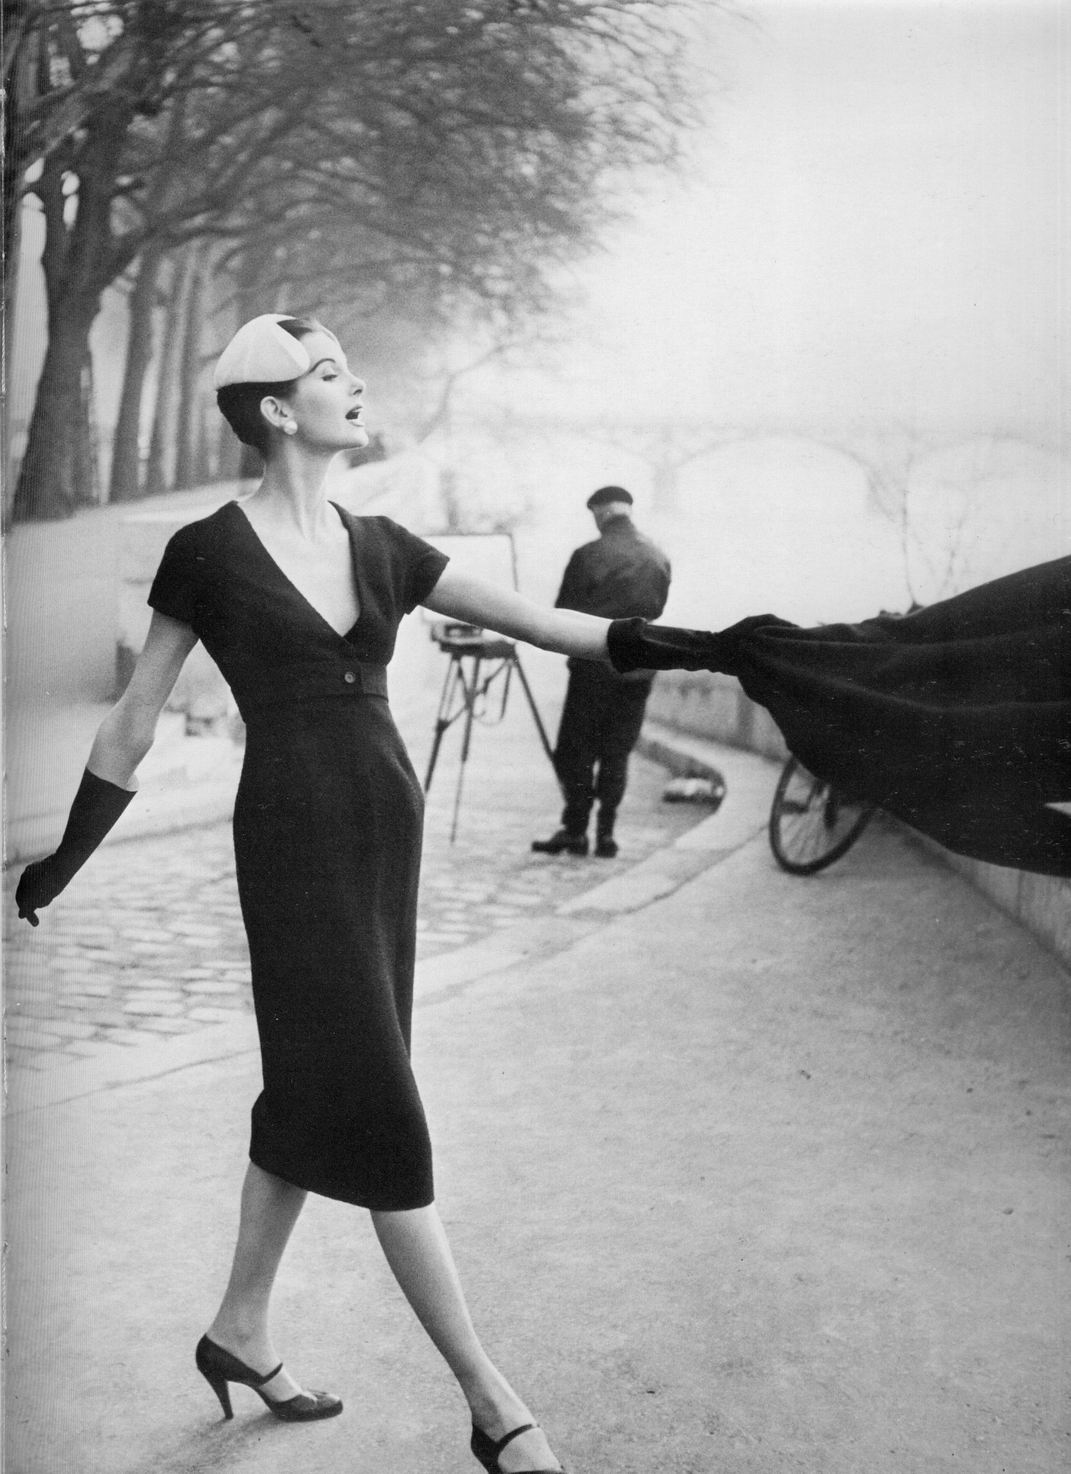 Ann Sainte-Marie pentru Dior, fotografiata de Henry Clarke in 1955